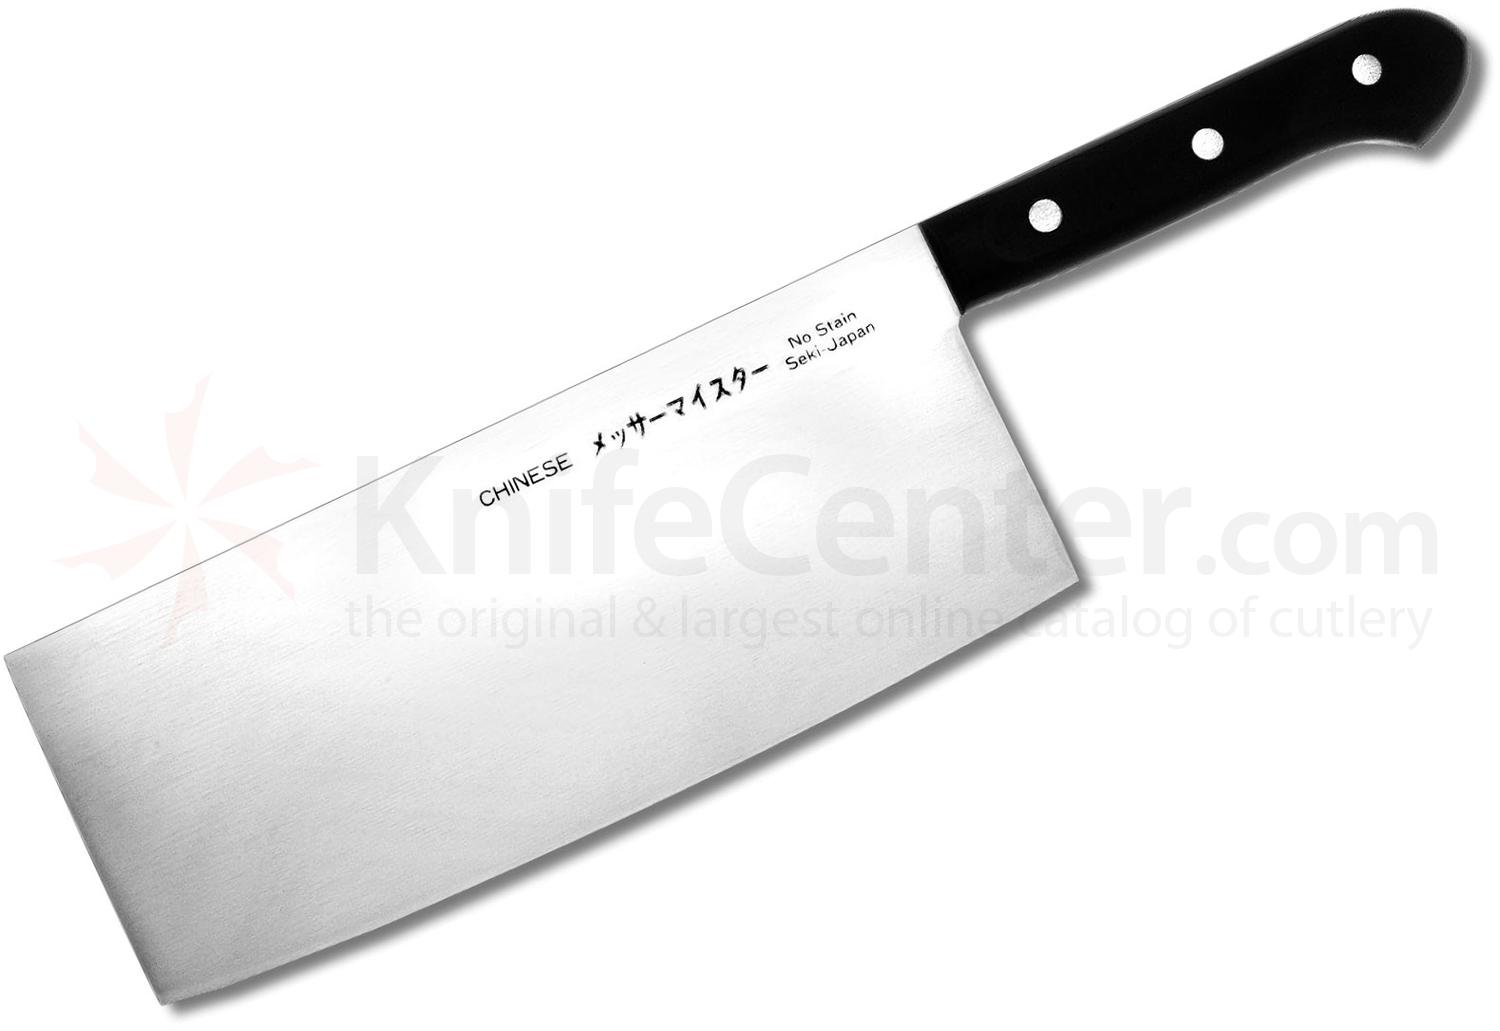 Messermeister Asian Precision 8 inch Chinese Cleaver